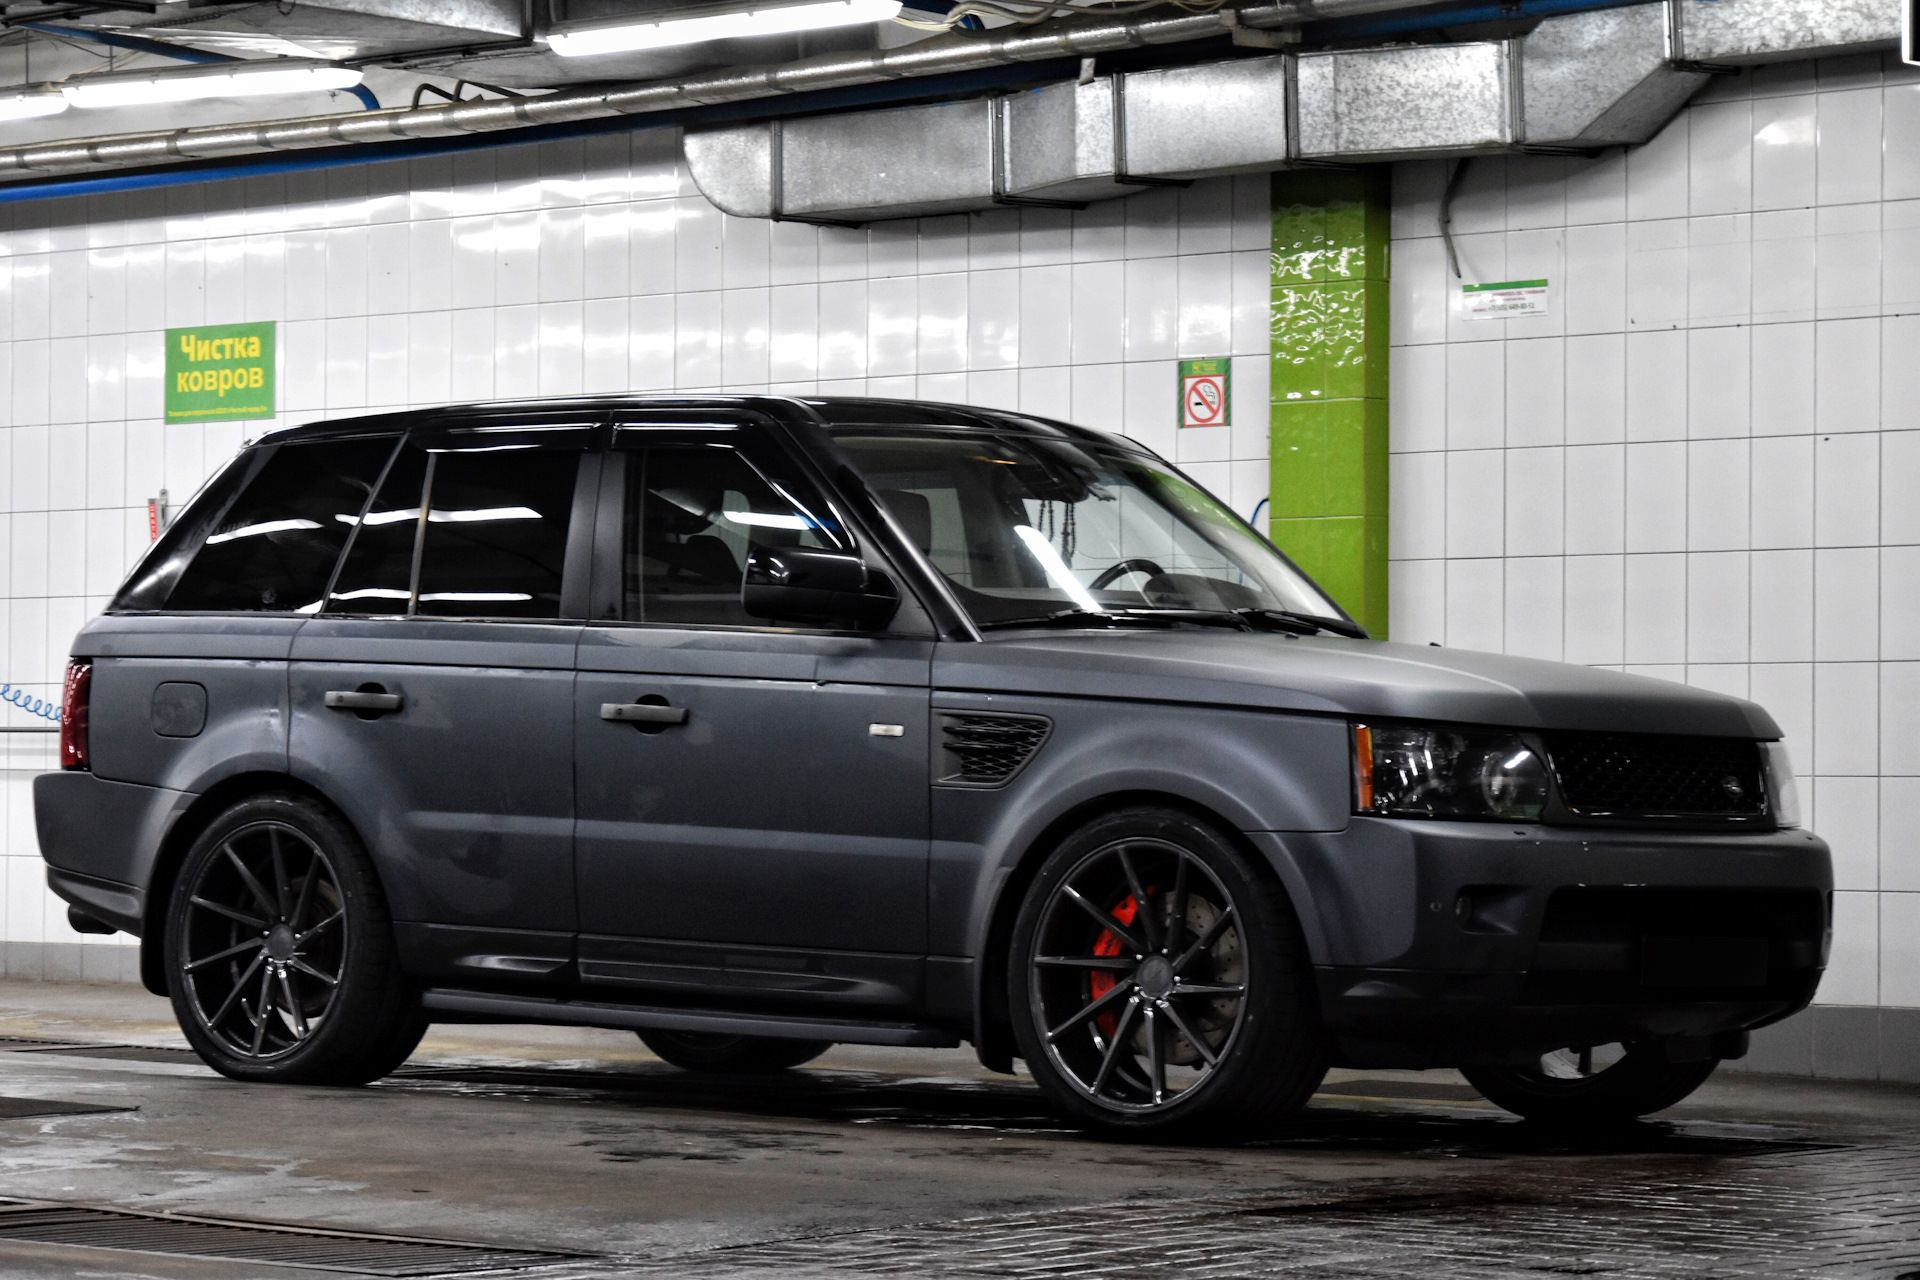 pin by fusebox on monster machines pinterest range rovers cars  [ 1920 x 1280 Pixel ]